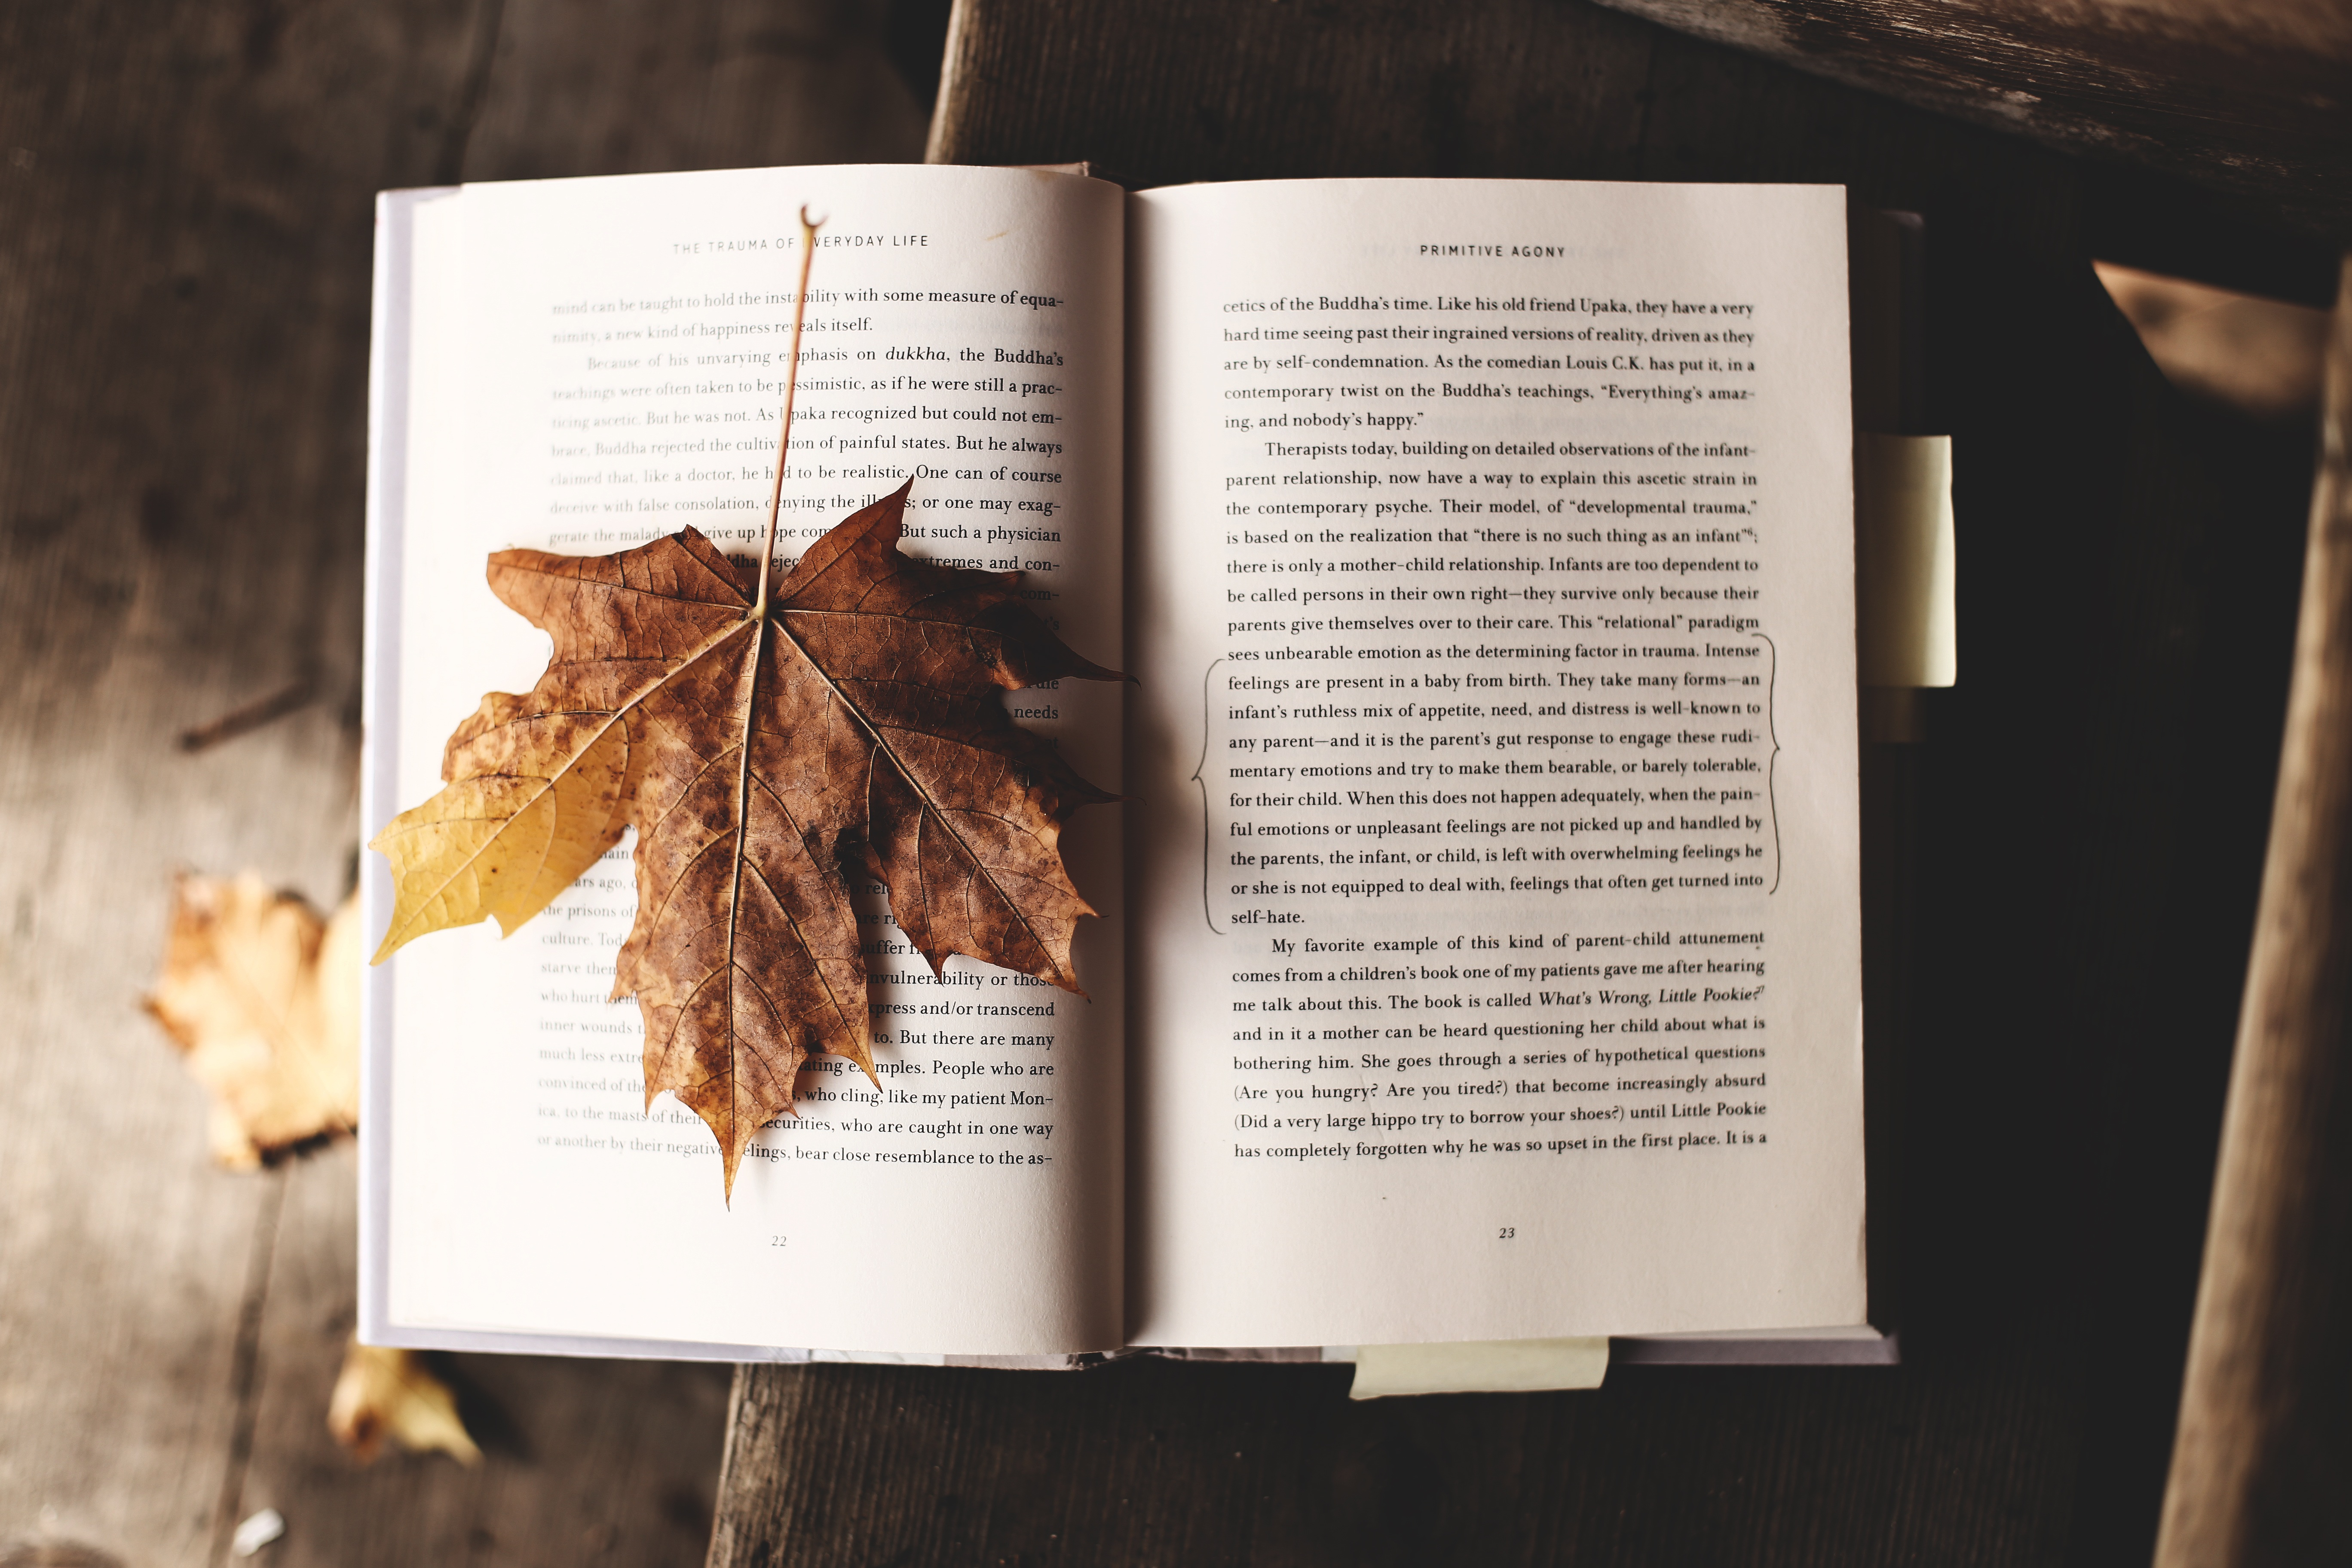 Fallen leave on the book photo